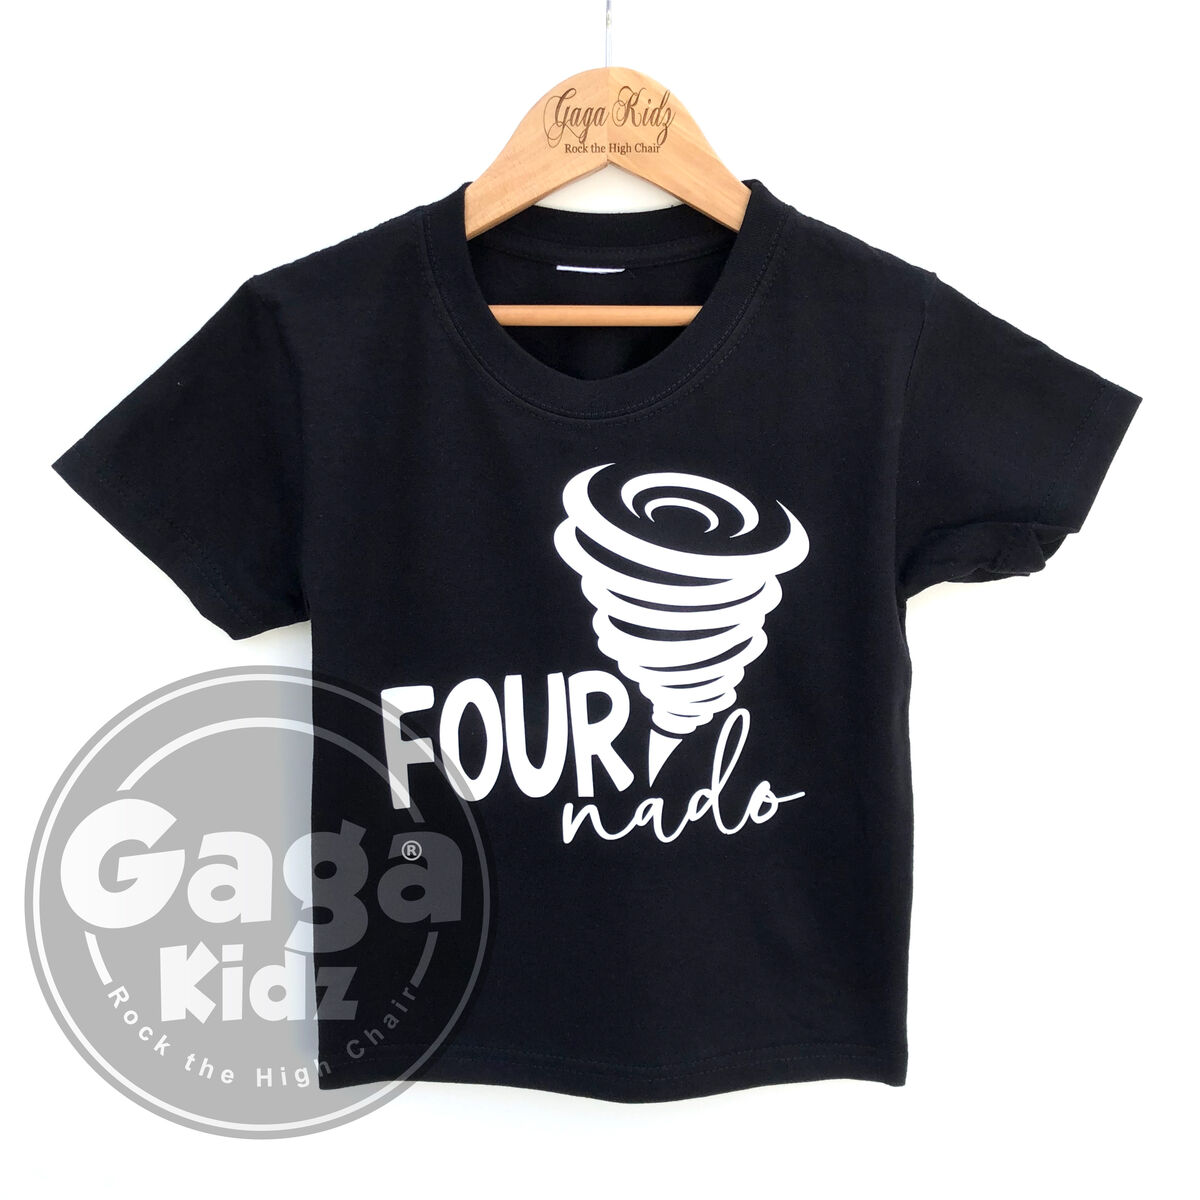 Fournado Black or White T-Shirt - product images  of